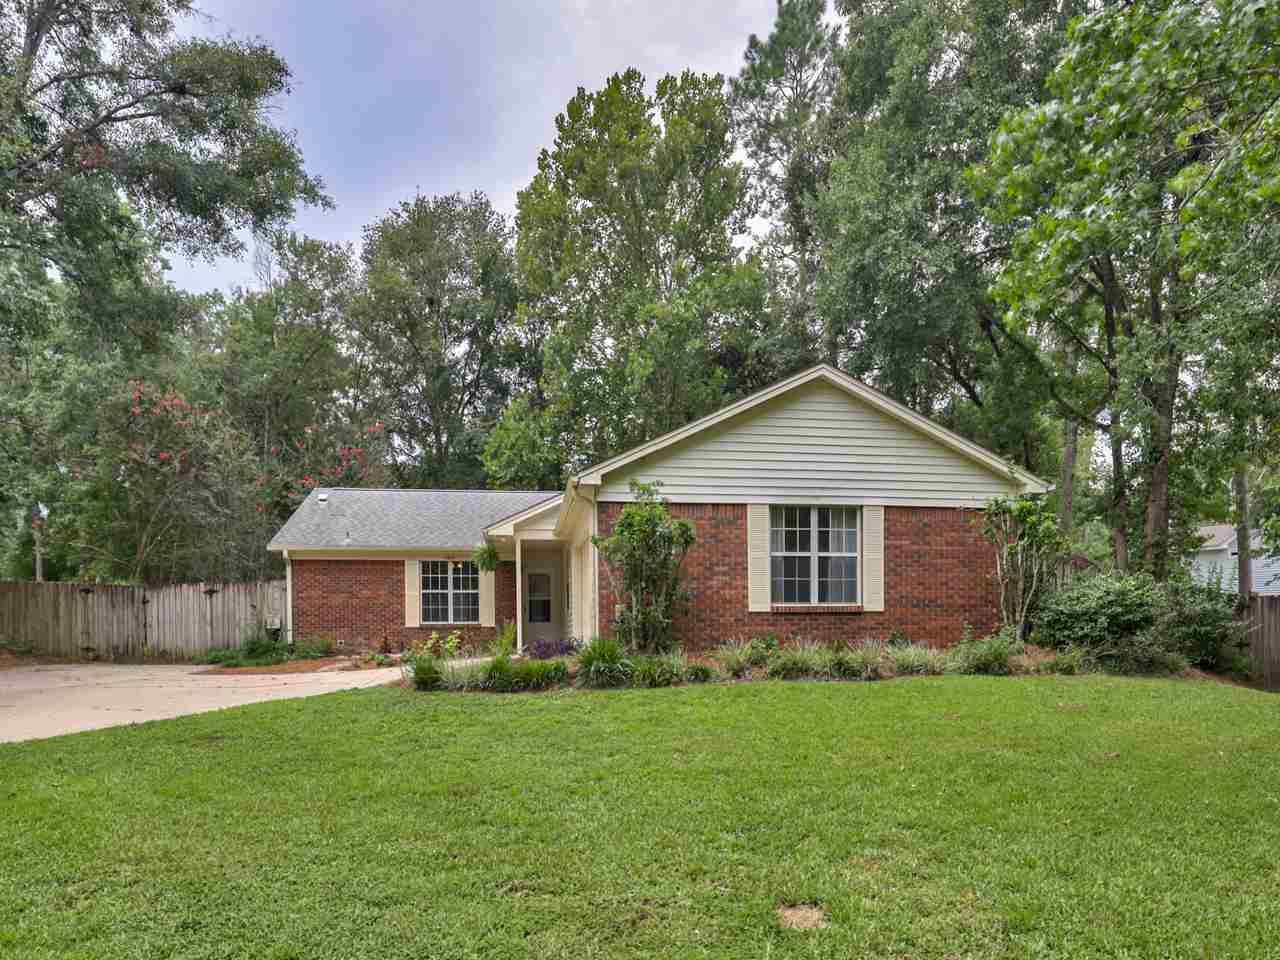 Photo of 3405 KILLIMORE Court, TALLAHASSEE, FL 32309 (MLS # 322594)